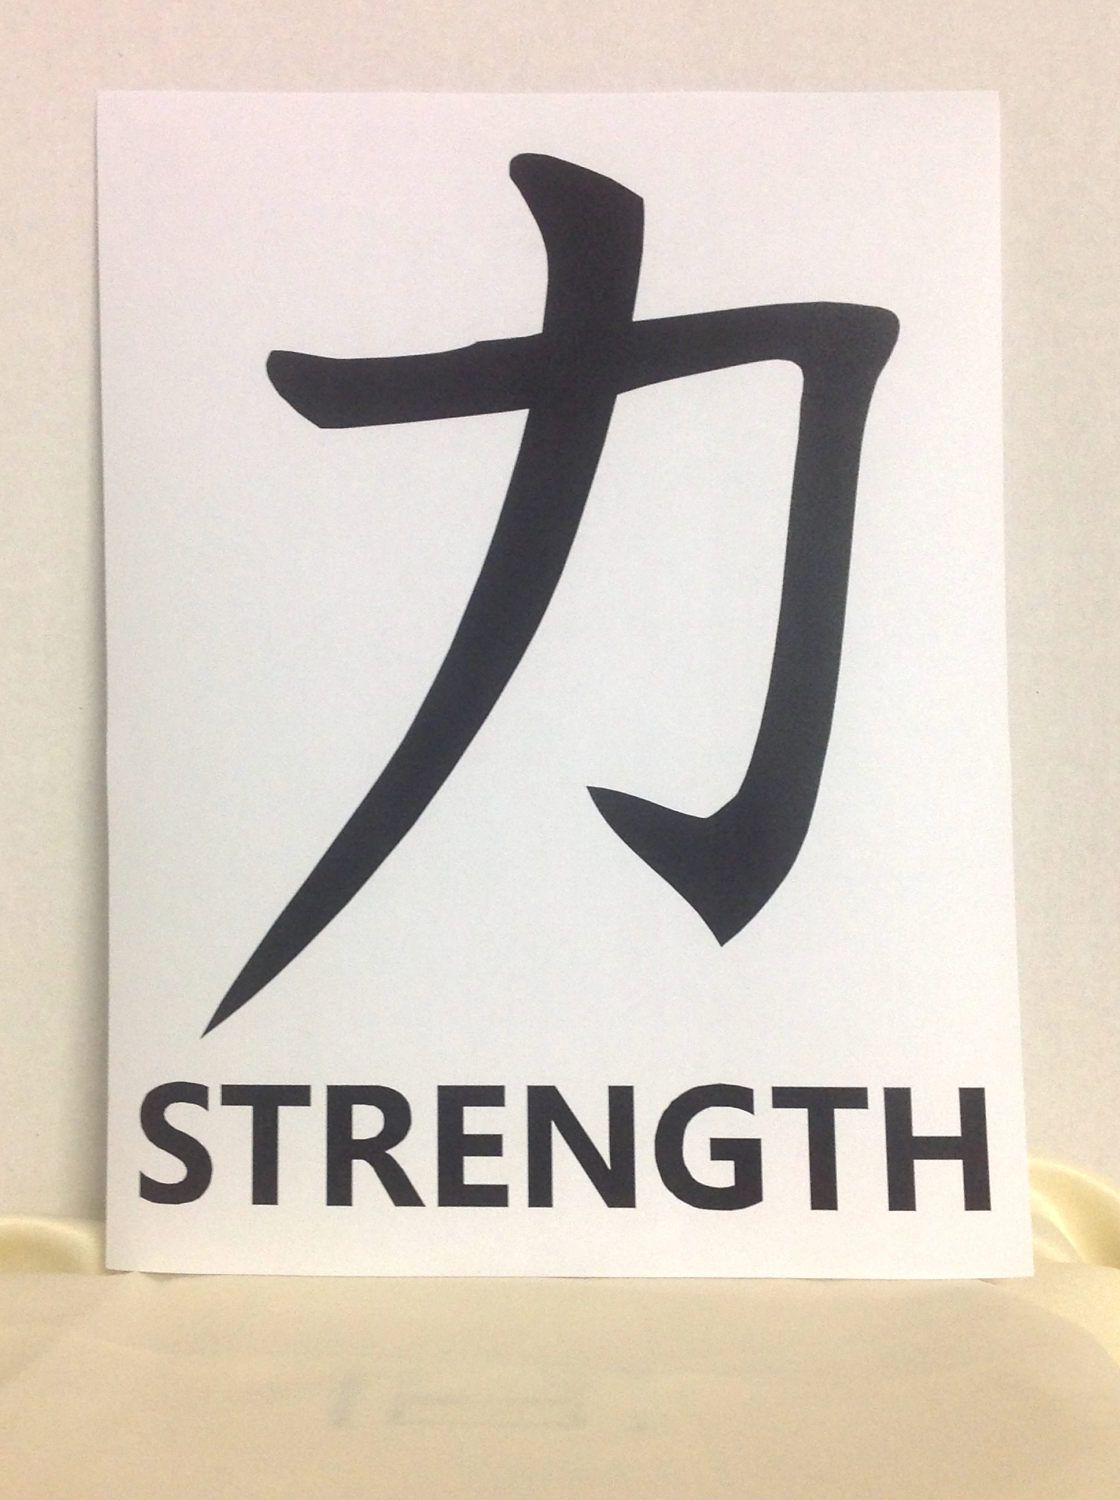 Japanese Symbol Print Strength Courage Wisdom Love Decor